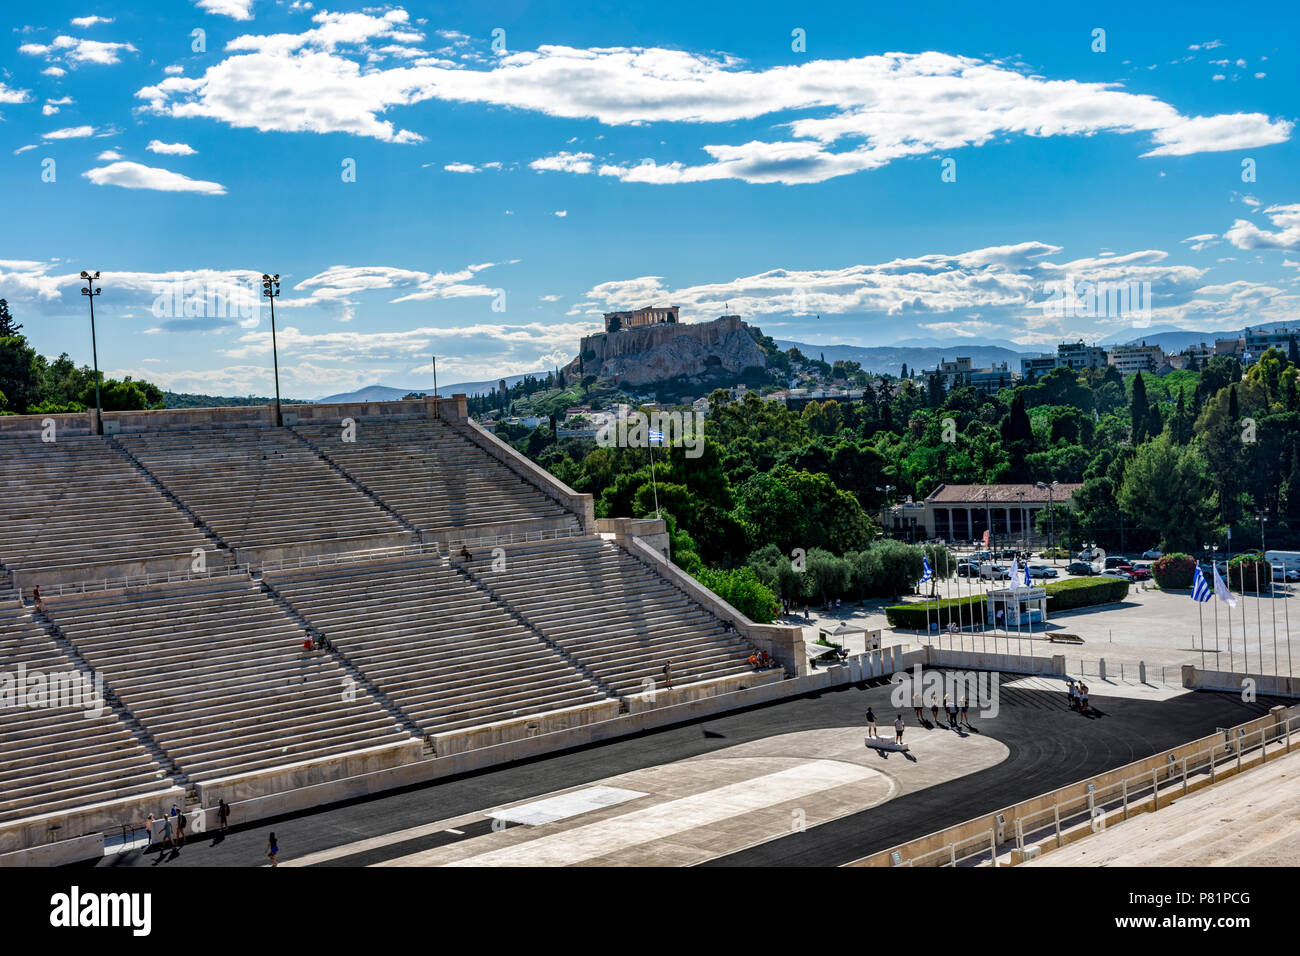 Panathenaic stadium with acropolis view, with clouds in the sky, Athens, Greece Stock Photo